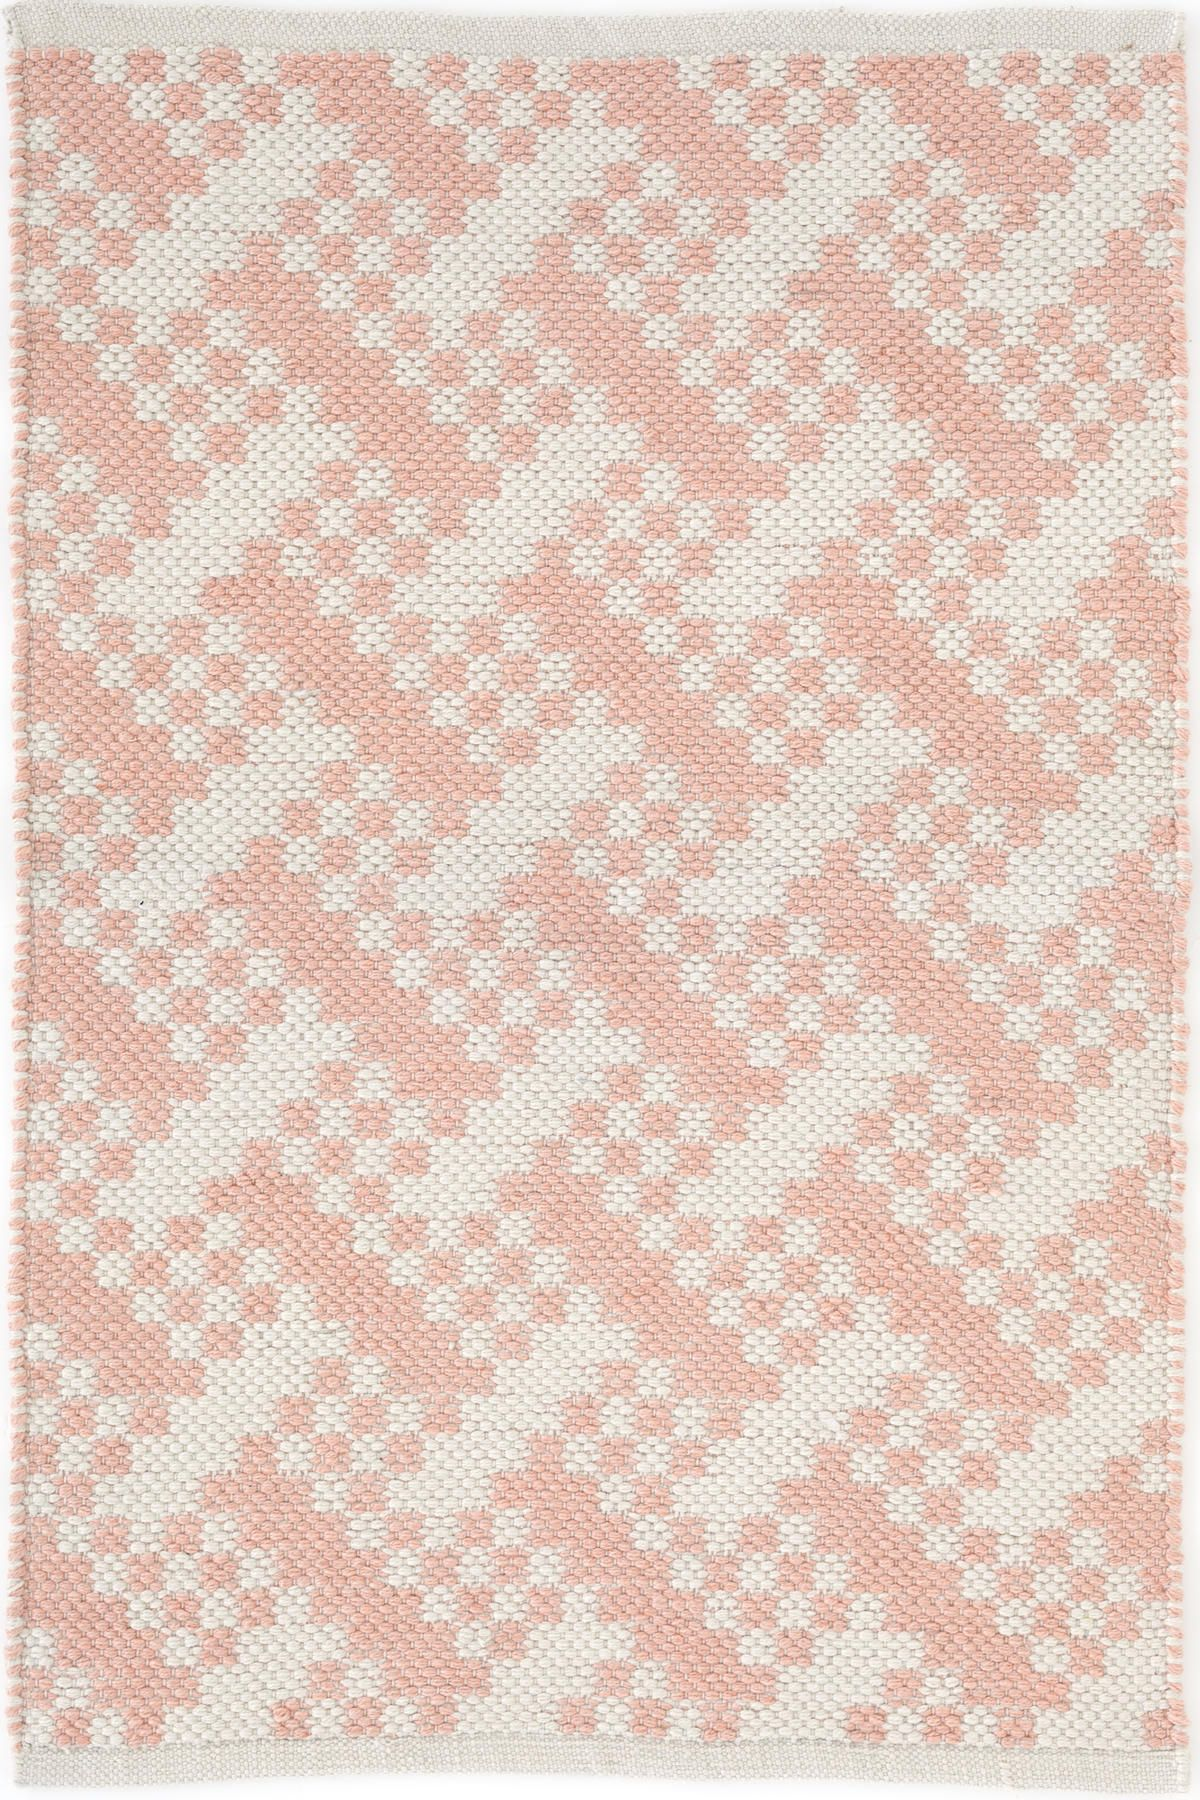 Product Brandname Display Hudson Pink Indoor Outdoor Rug Indoor Outdoor Rugs Outdoor Rugs Bliss Home And Design